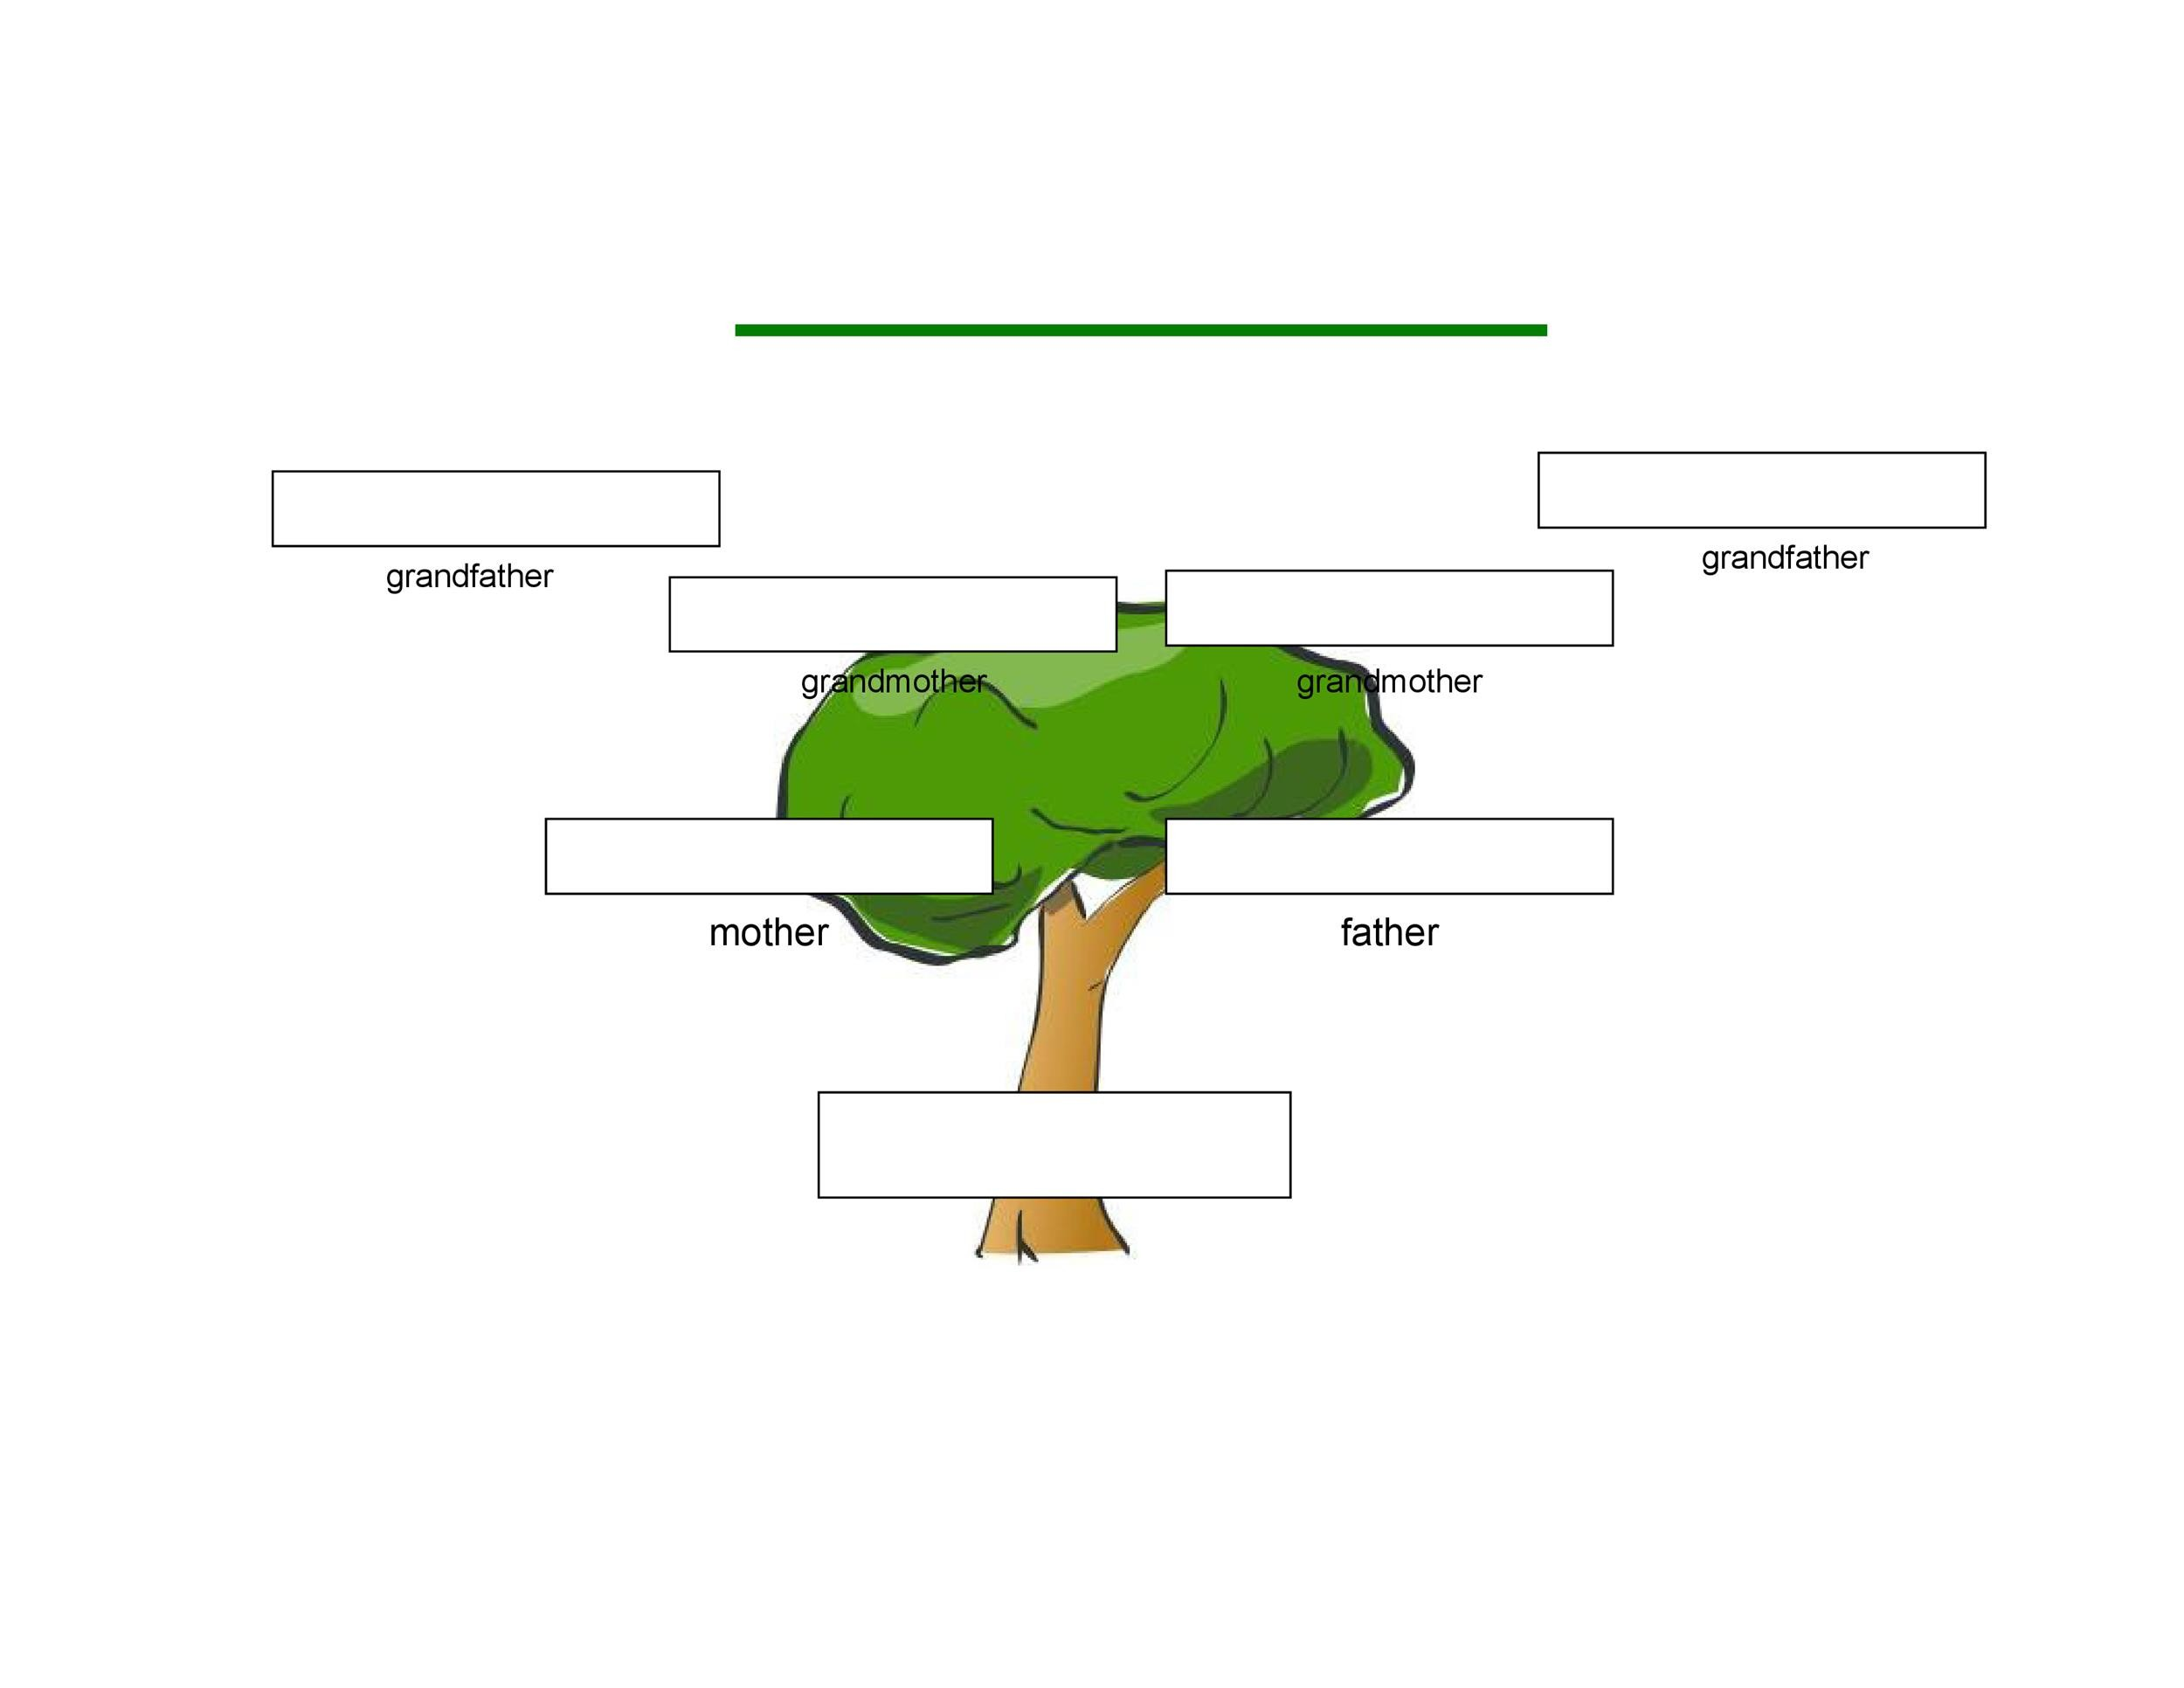 nursing genogram example